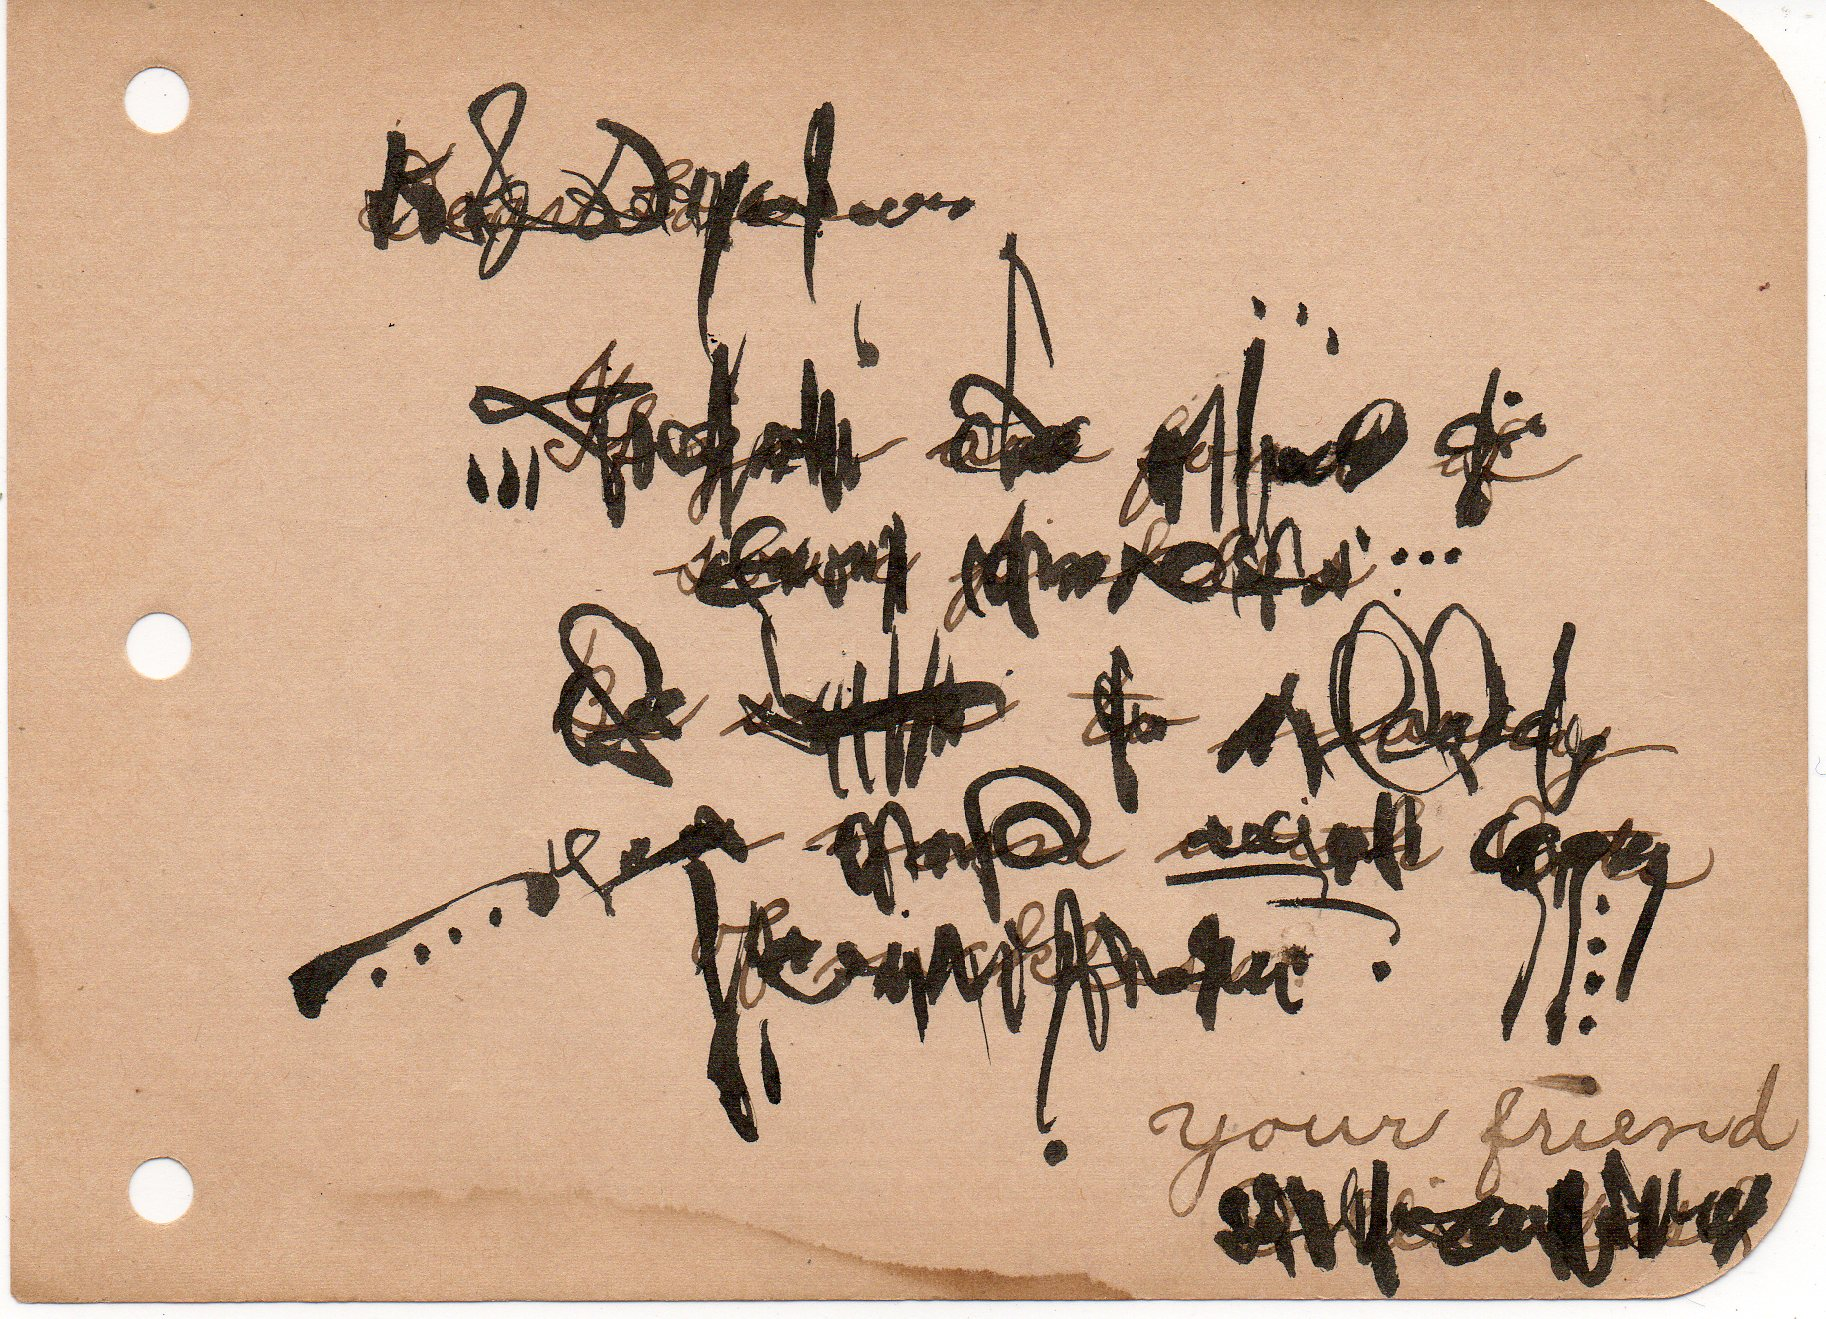 Asemic correspondence by Cecil Touchon